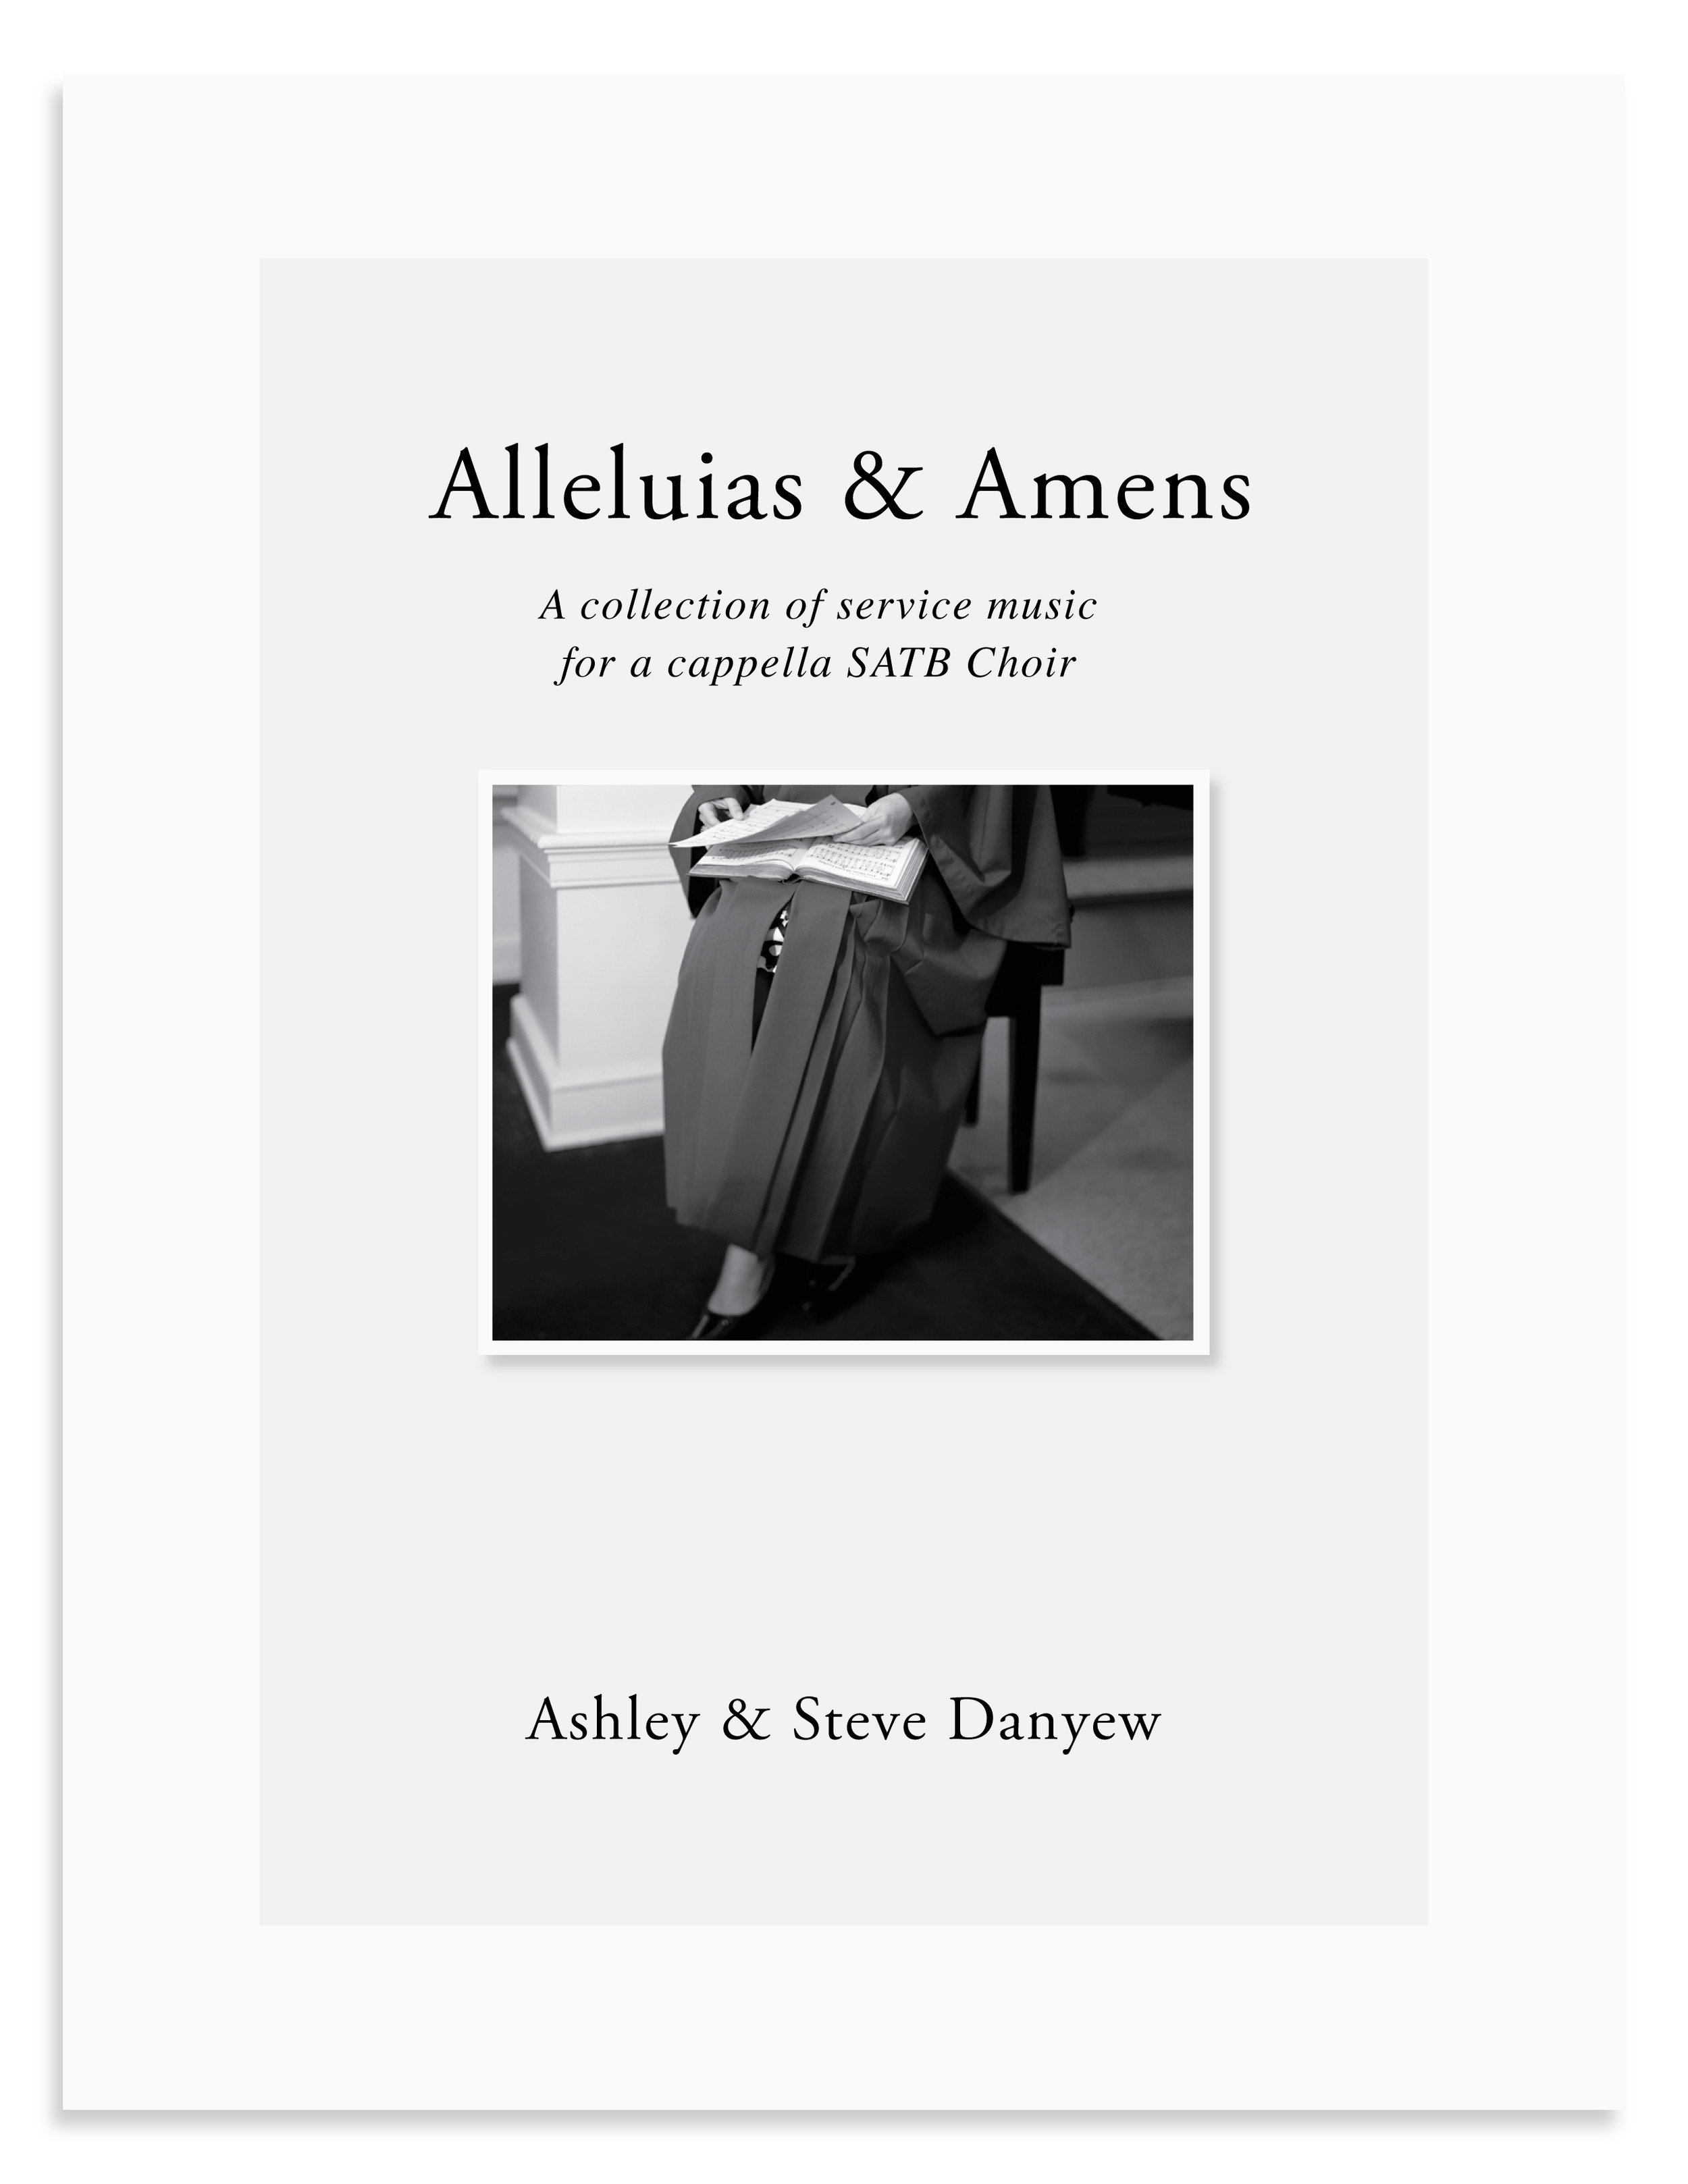 Alleluias & Amens_Choral Service Music by Ashley Danyew.png